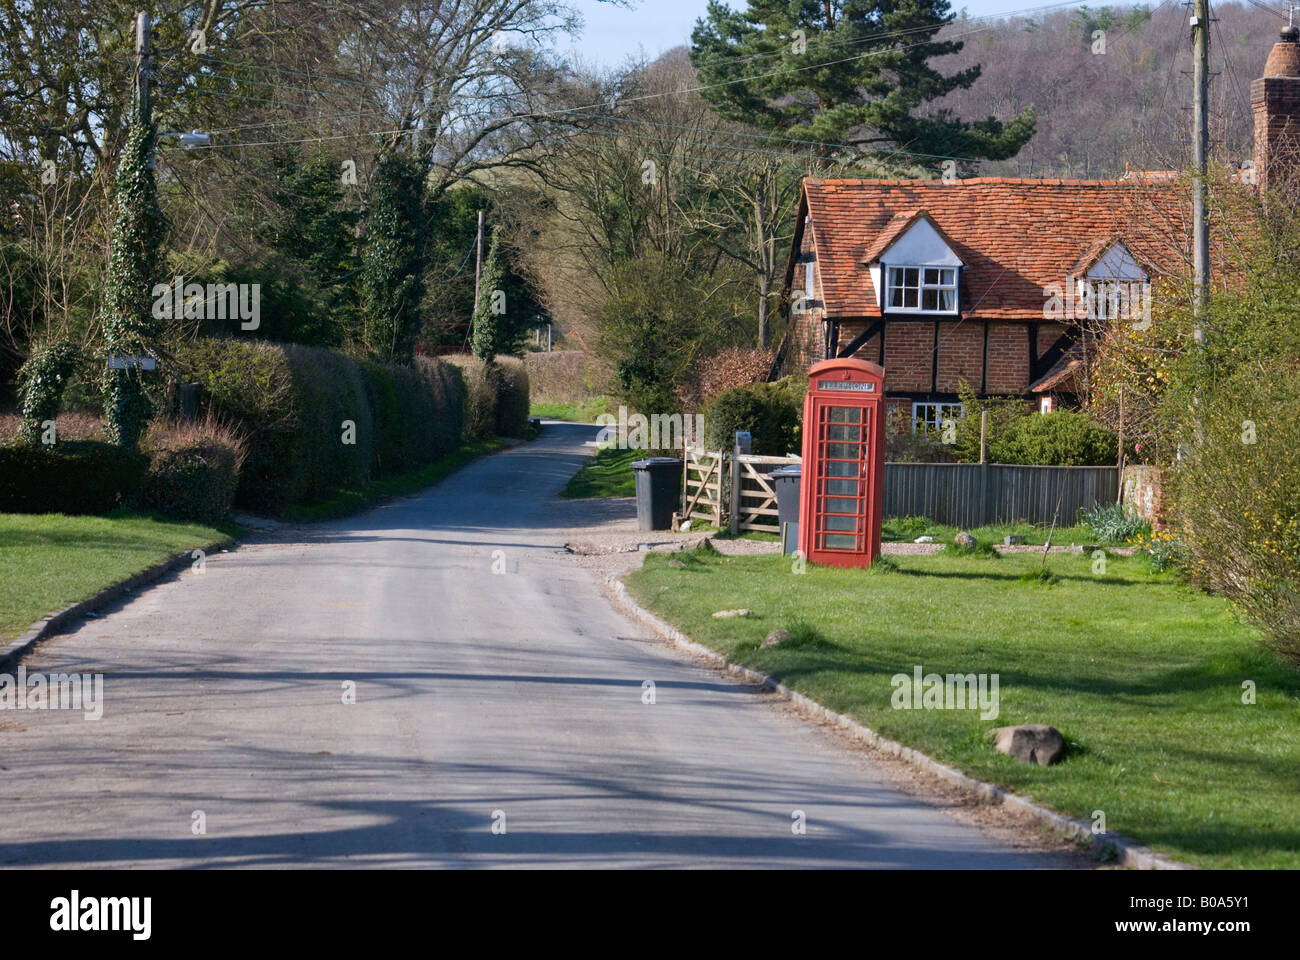 A tranquil English village scene with a traditional red telephone box standing on a country lane in the village - Stock Image